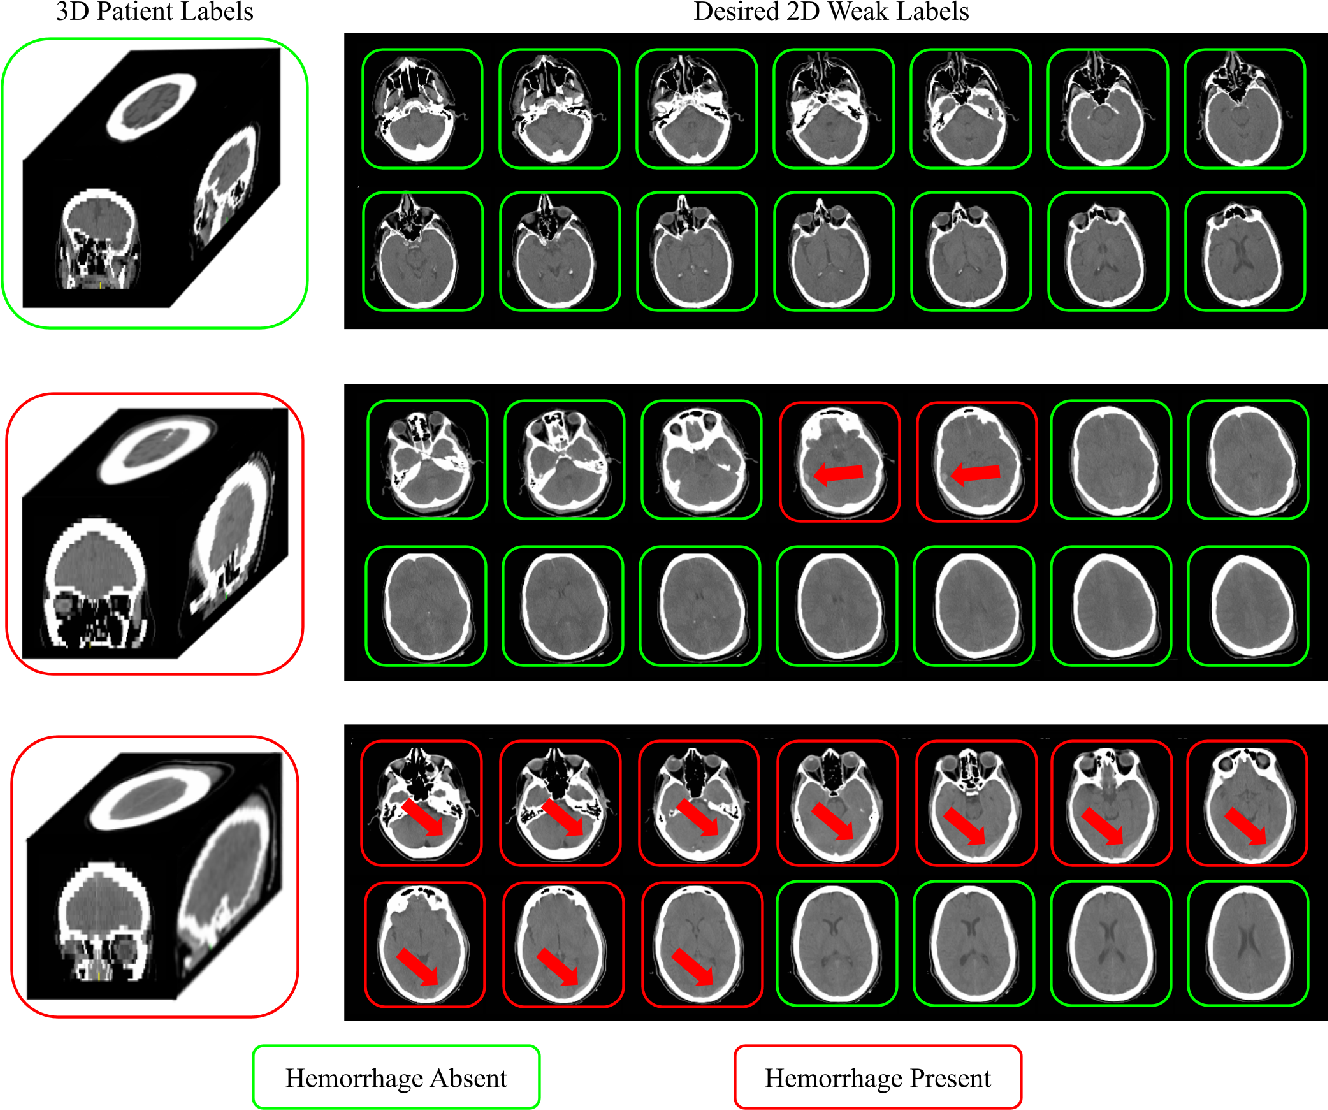 Figure 1 for Extracting 2D weak labels from volume labels using multiple instance learning in CT hemorrhage detection